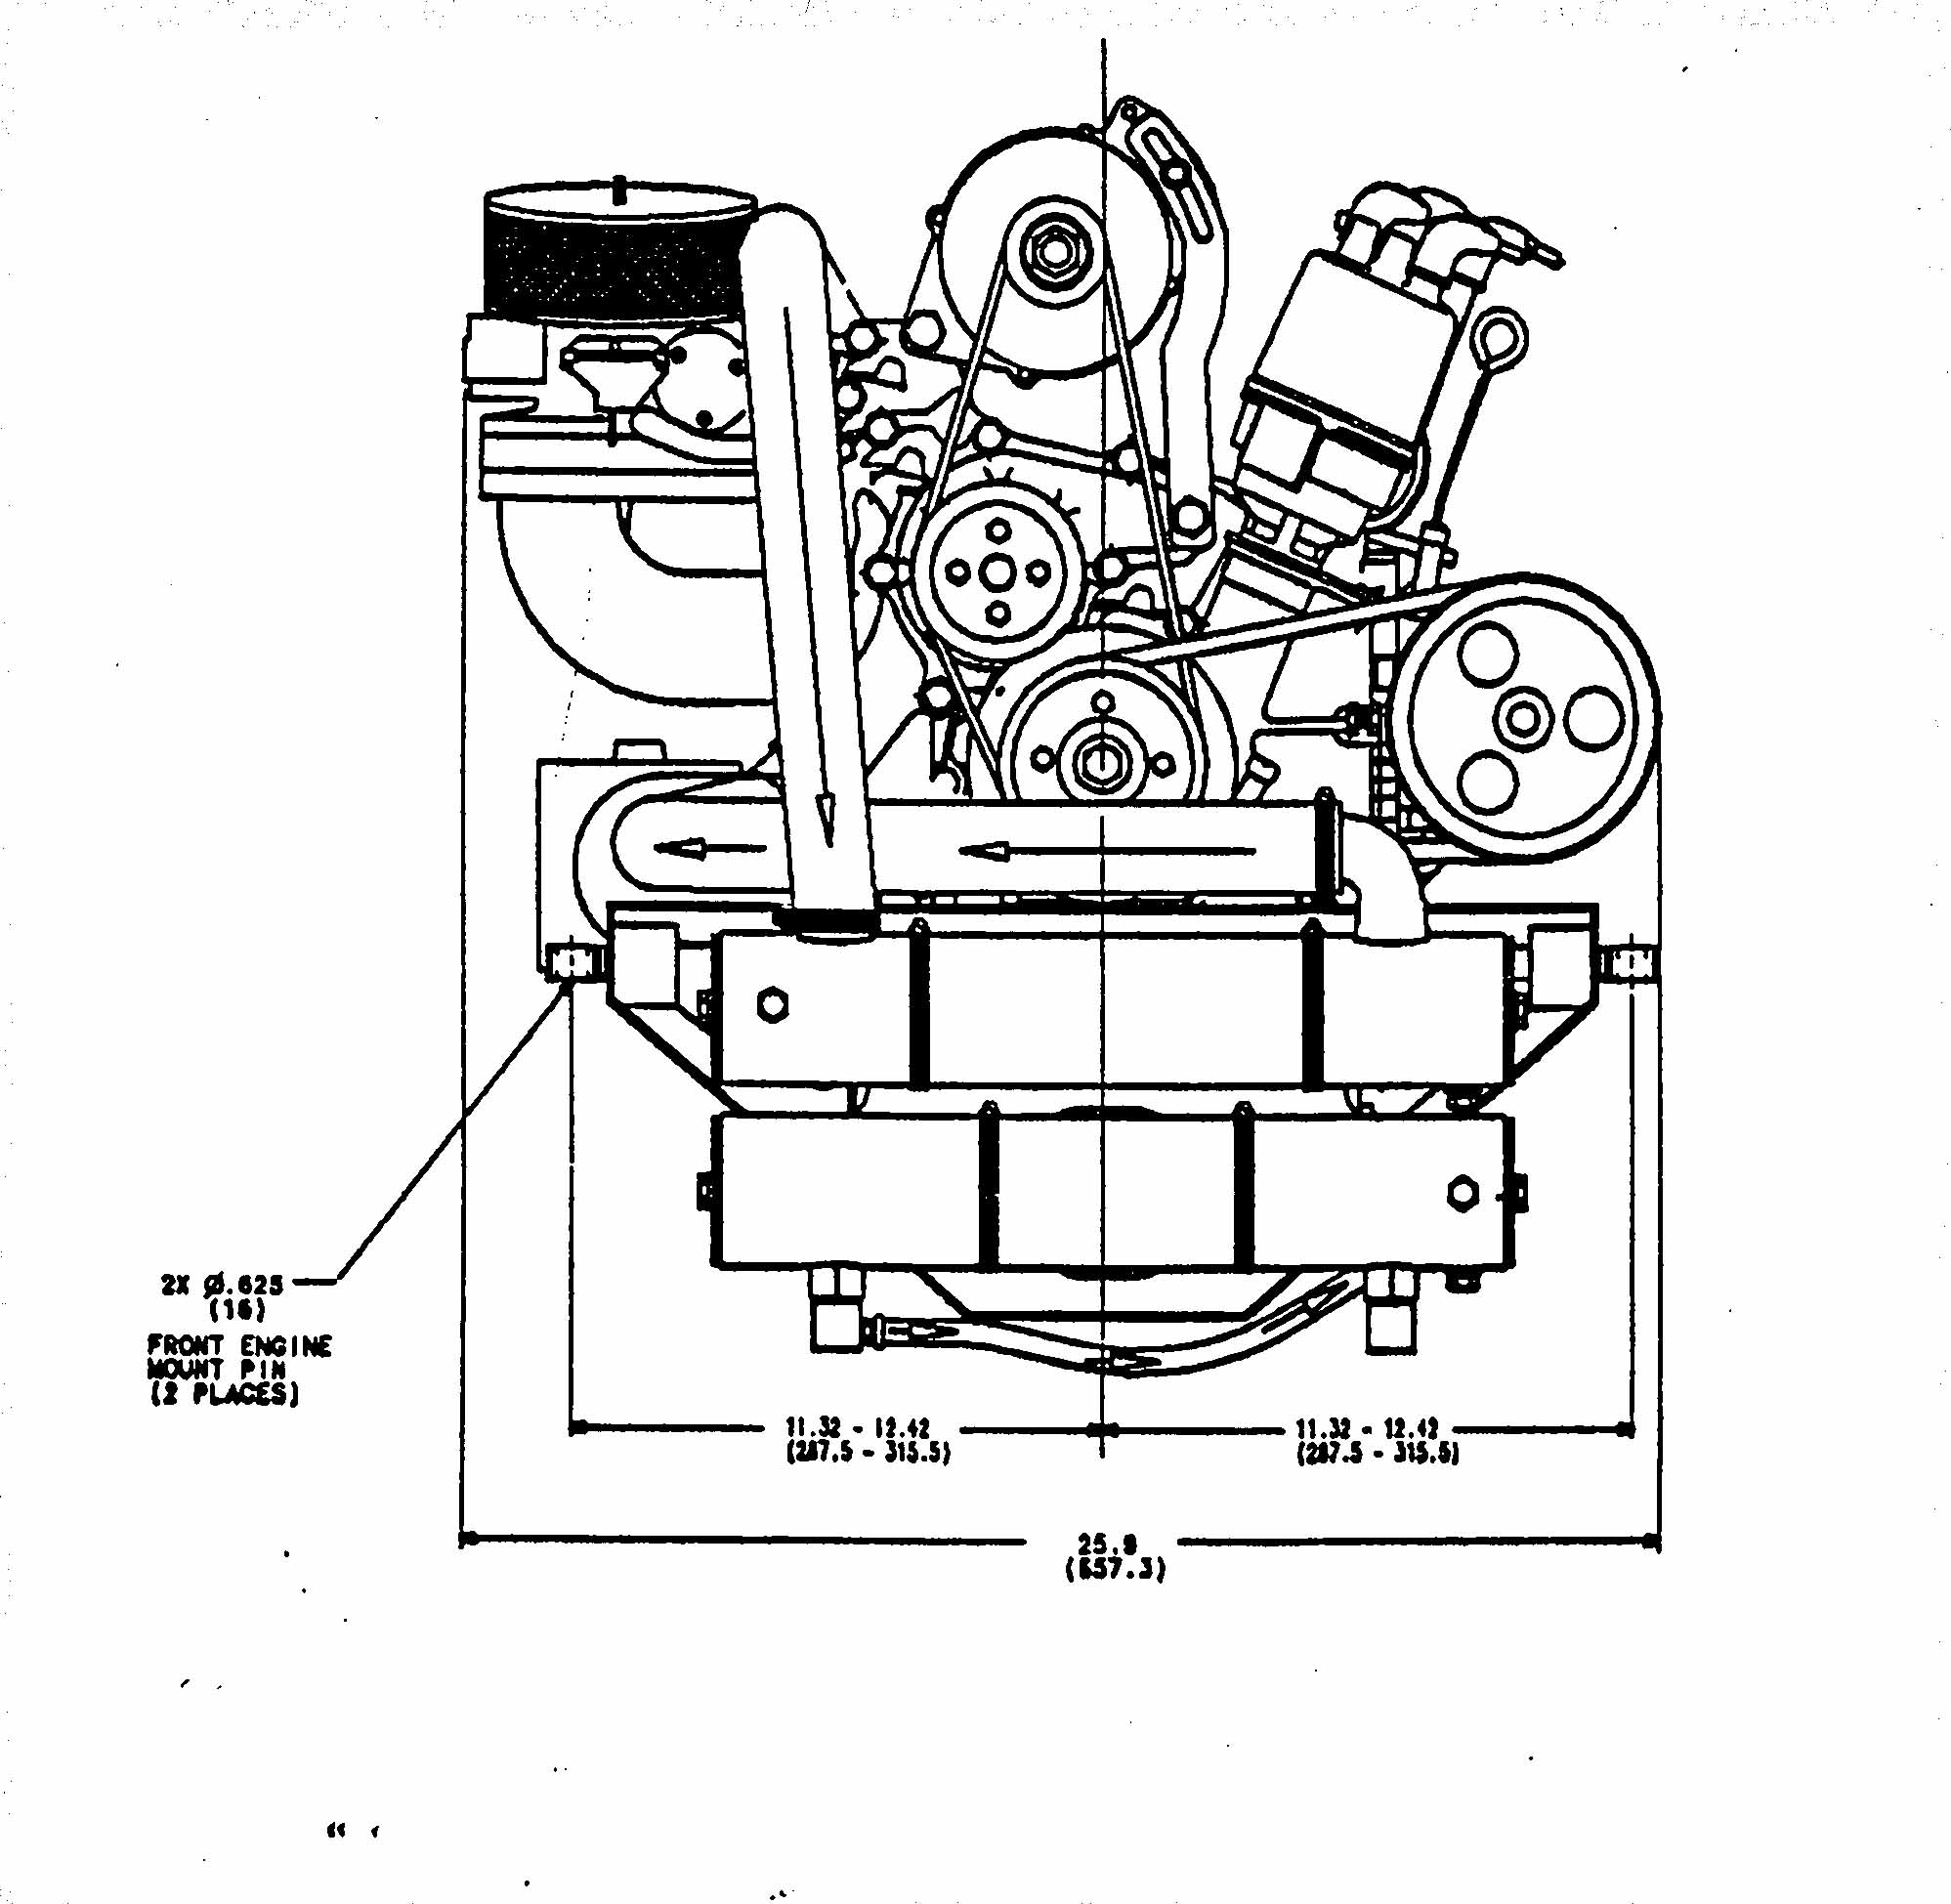 mazda rx7 engine bay diagram